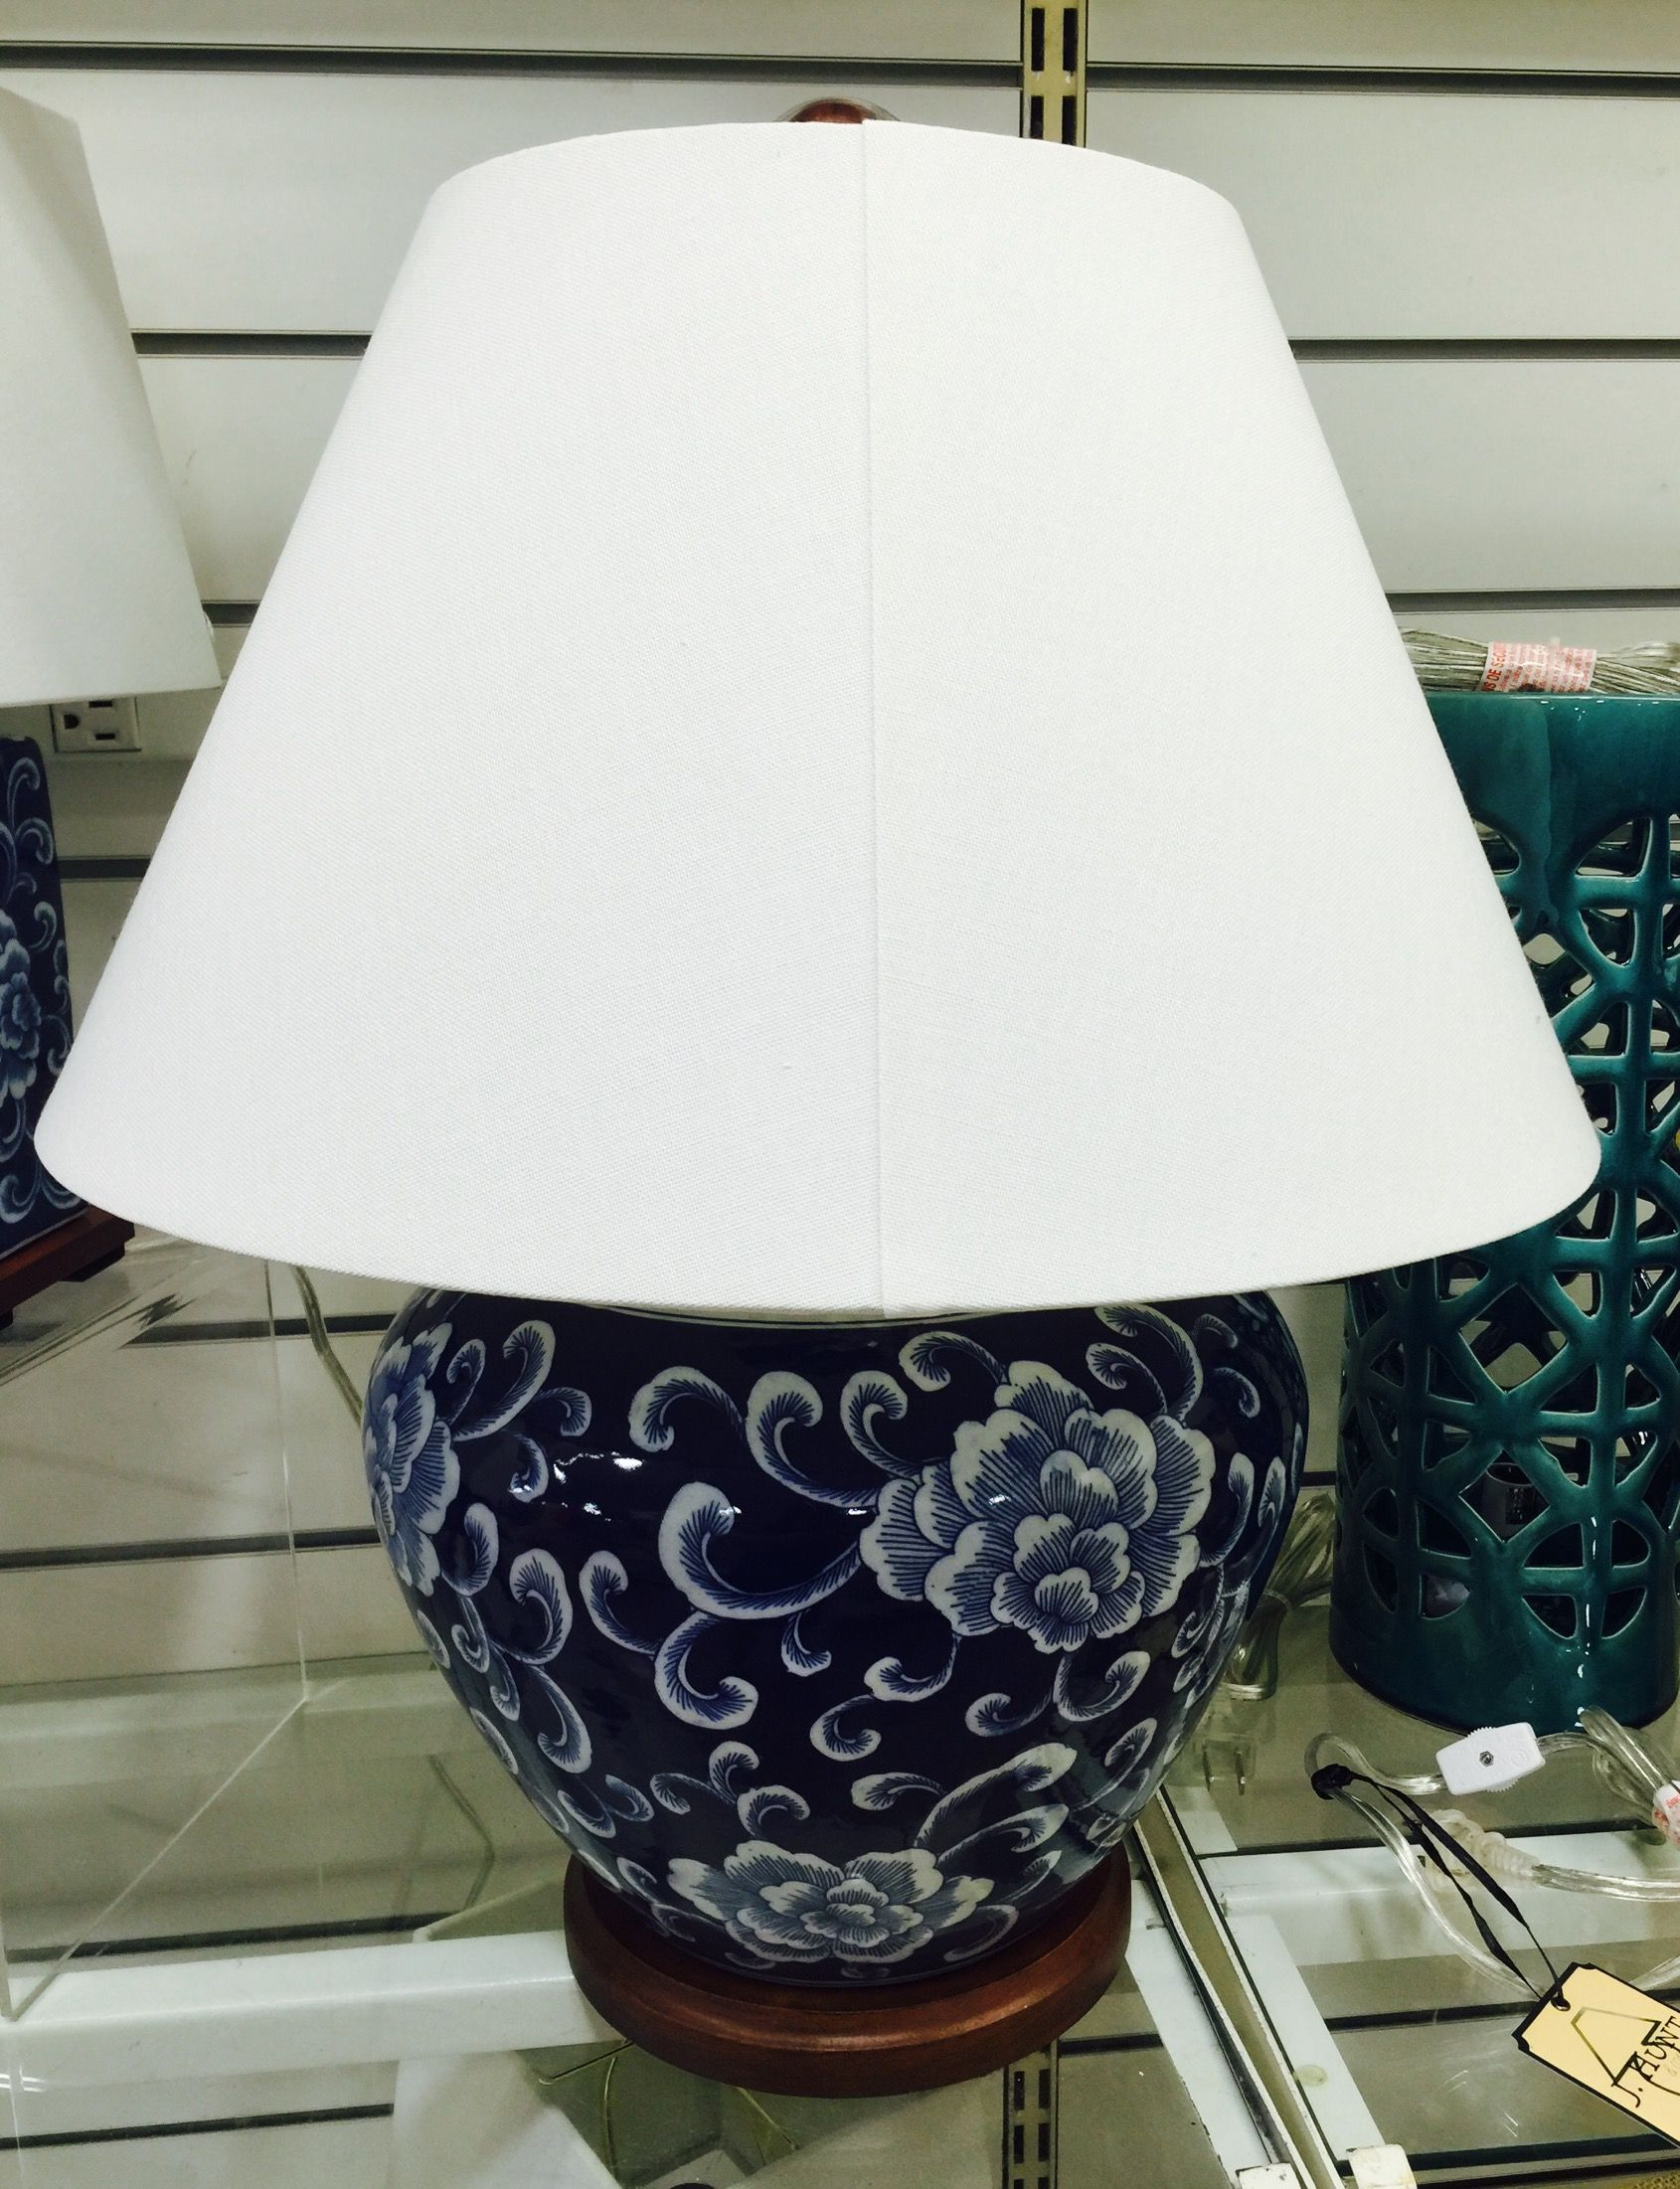 Lauren ralph lauren blue and white floral ceramic table lamp 130 lauren ralph lauren blue and white floral ceramic table lamp 130 at homegoods august 2016 geotapseo Image collections